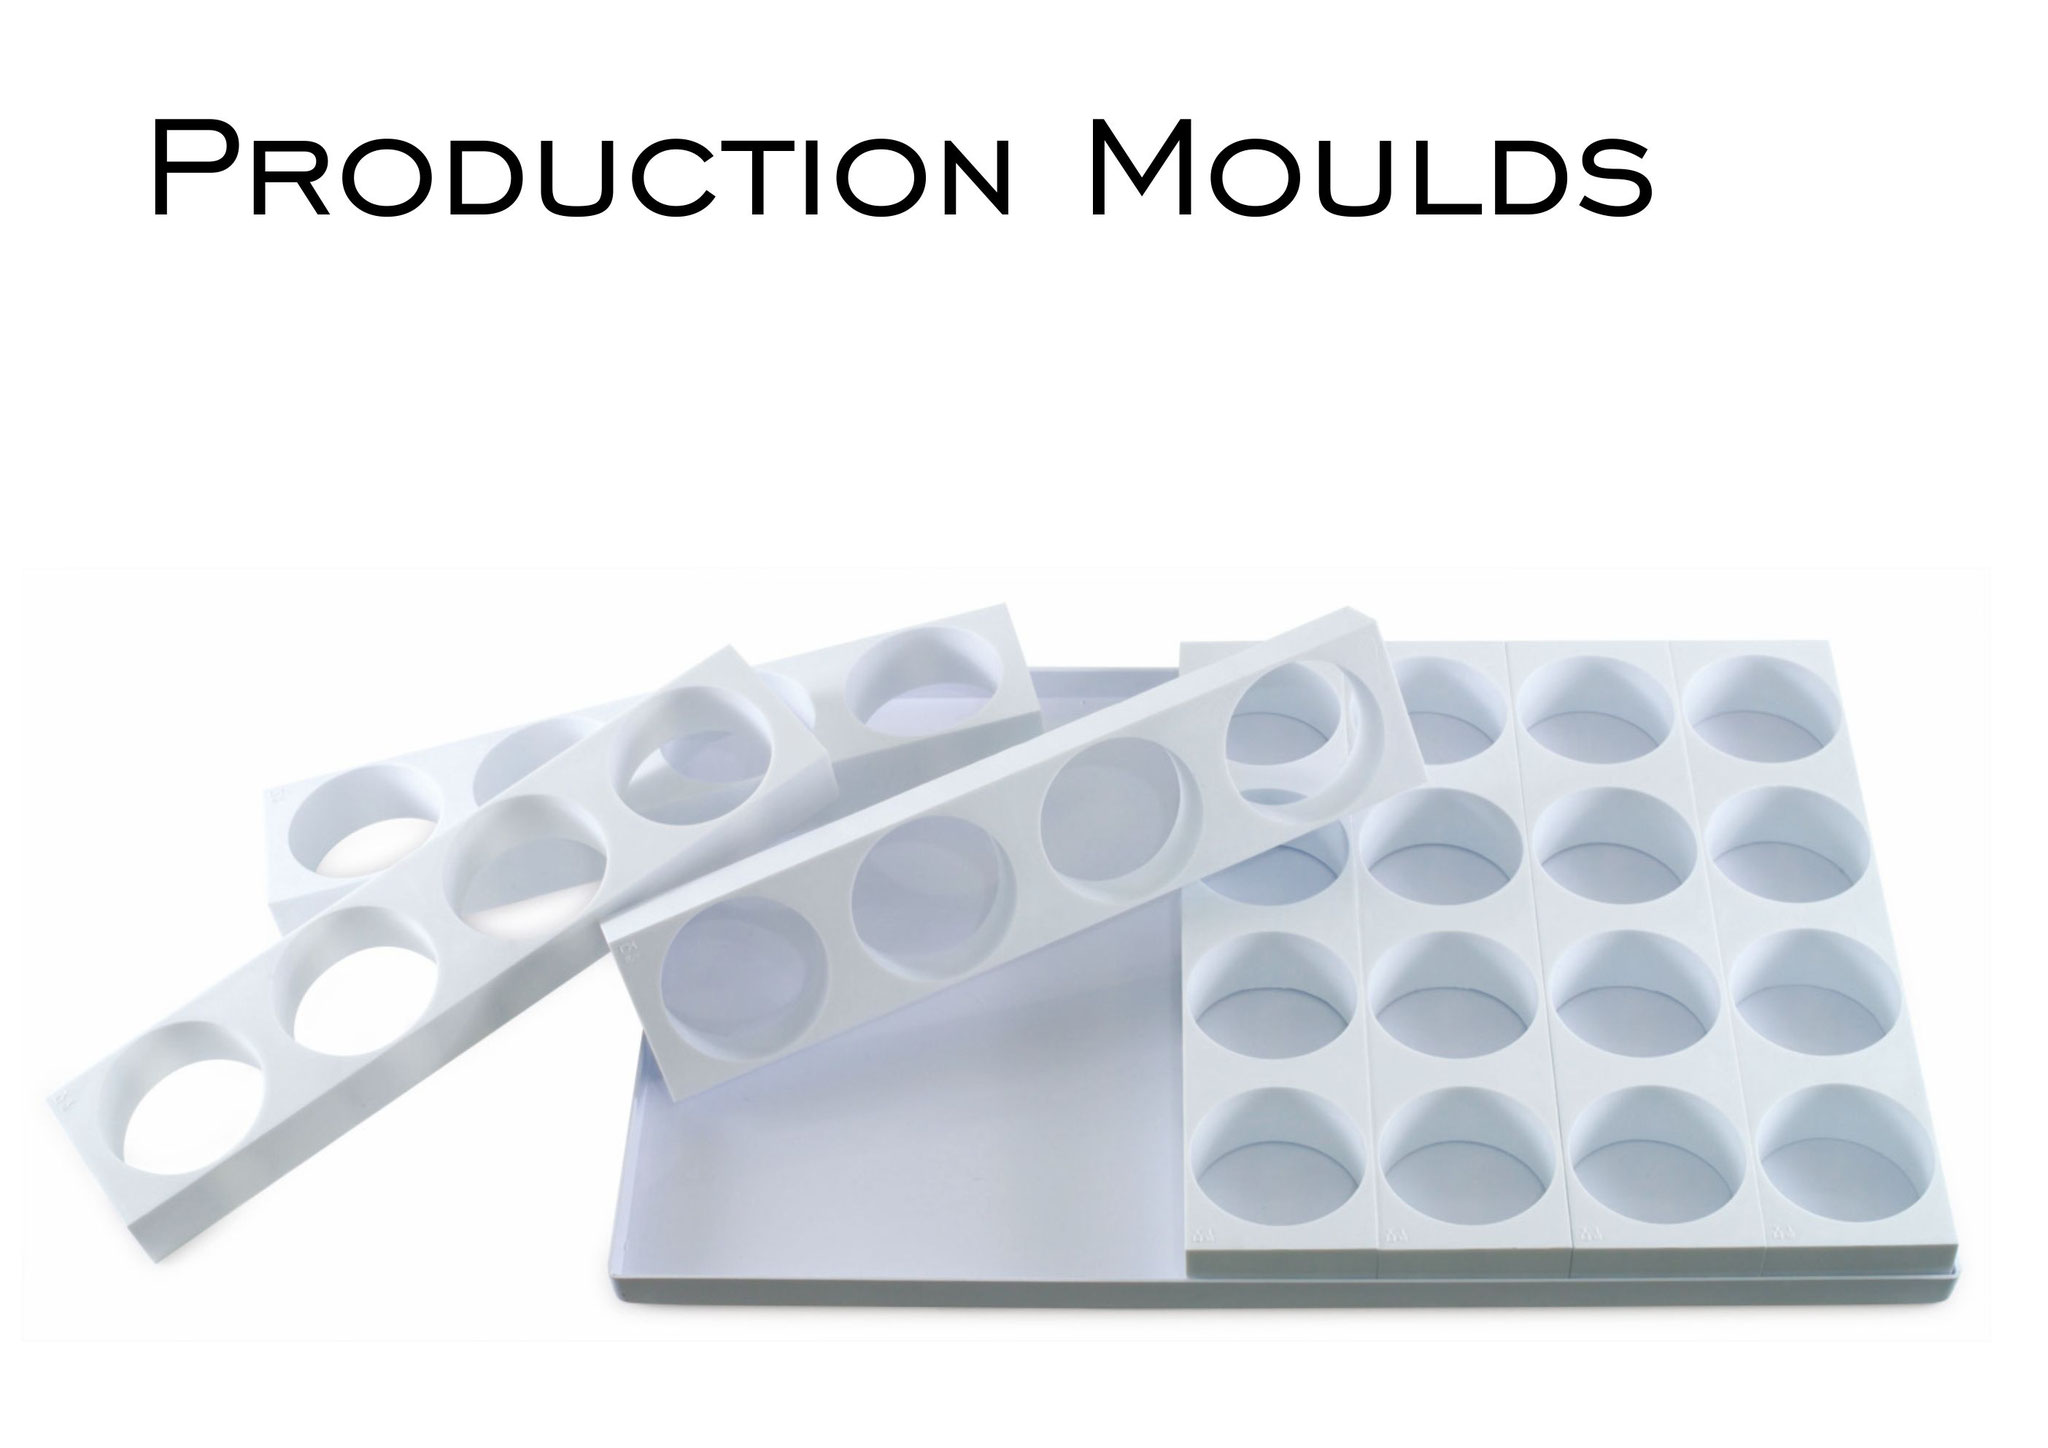 Production Moulds